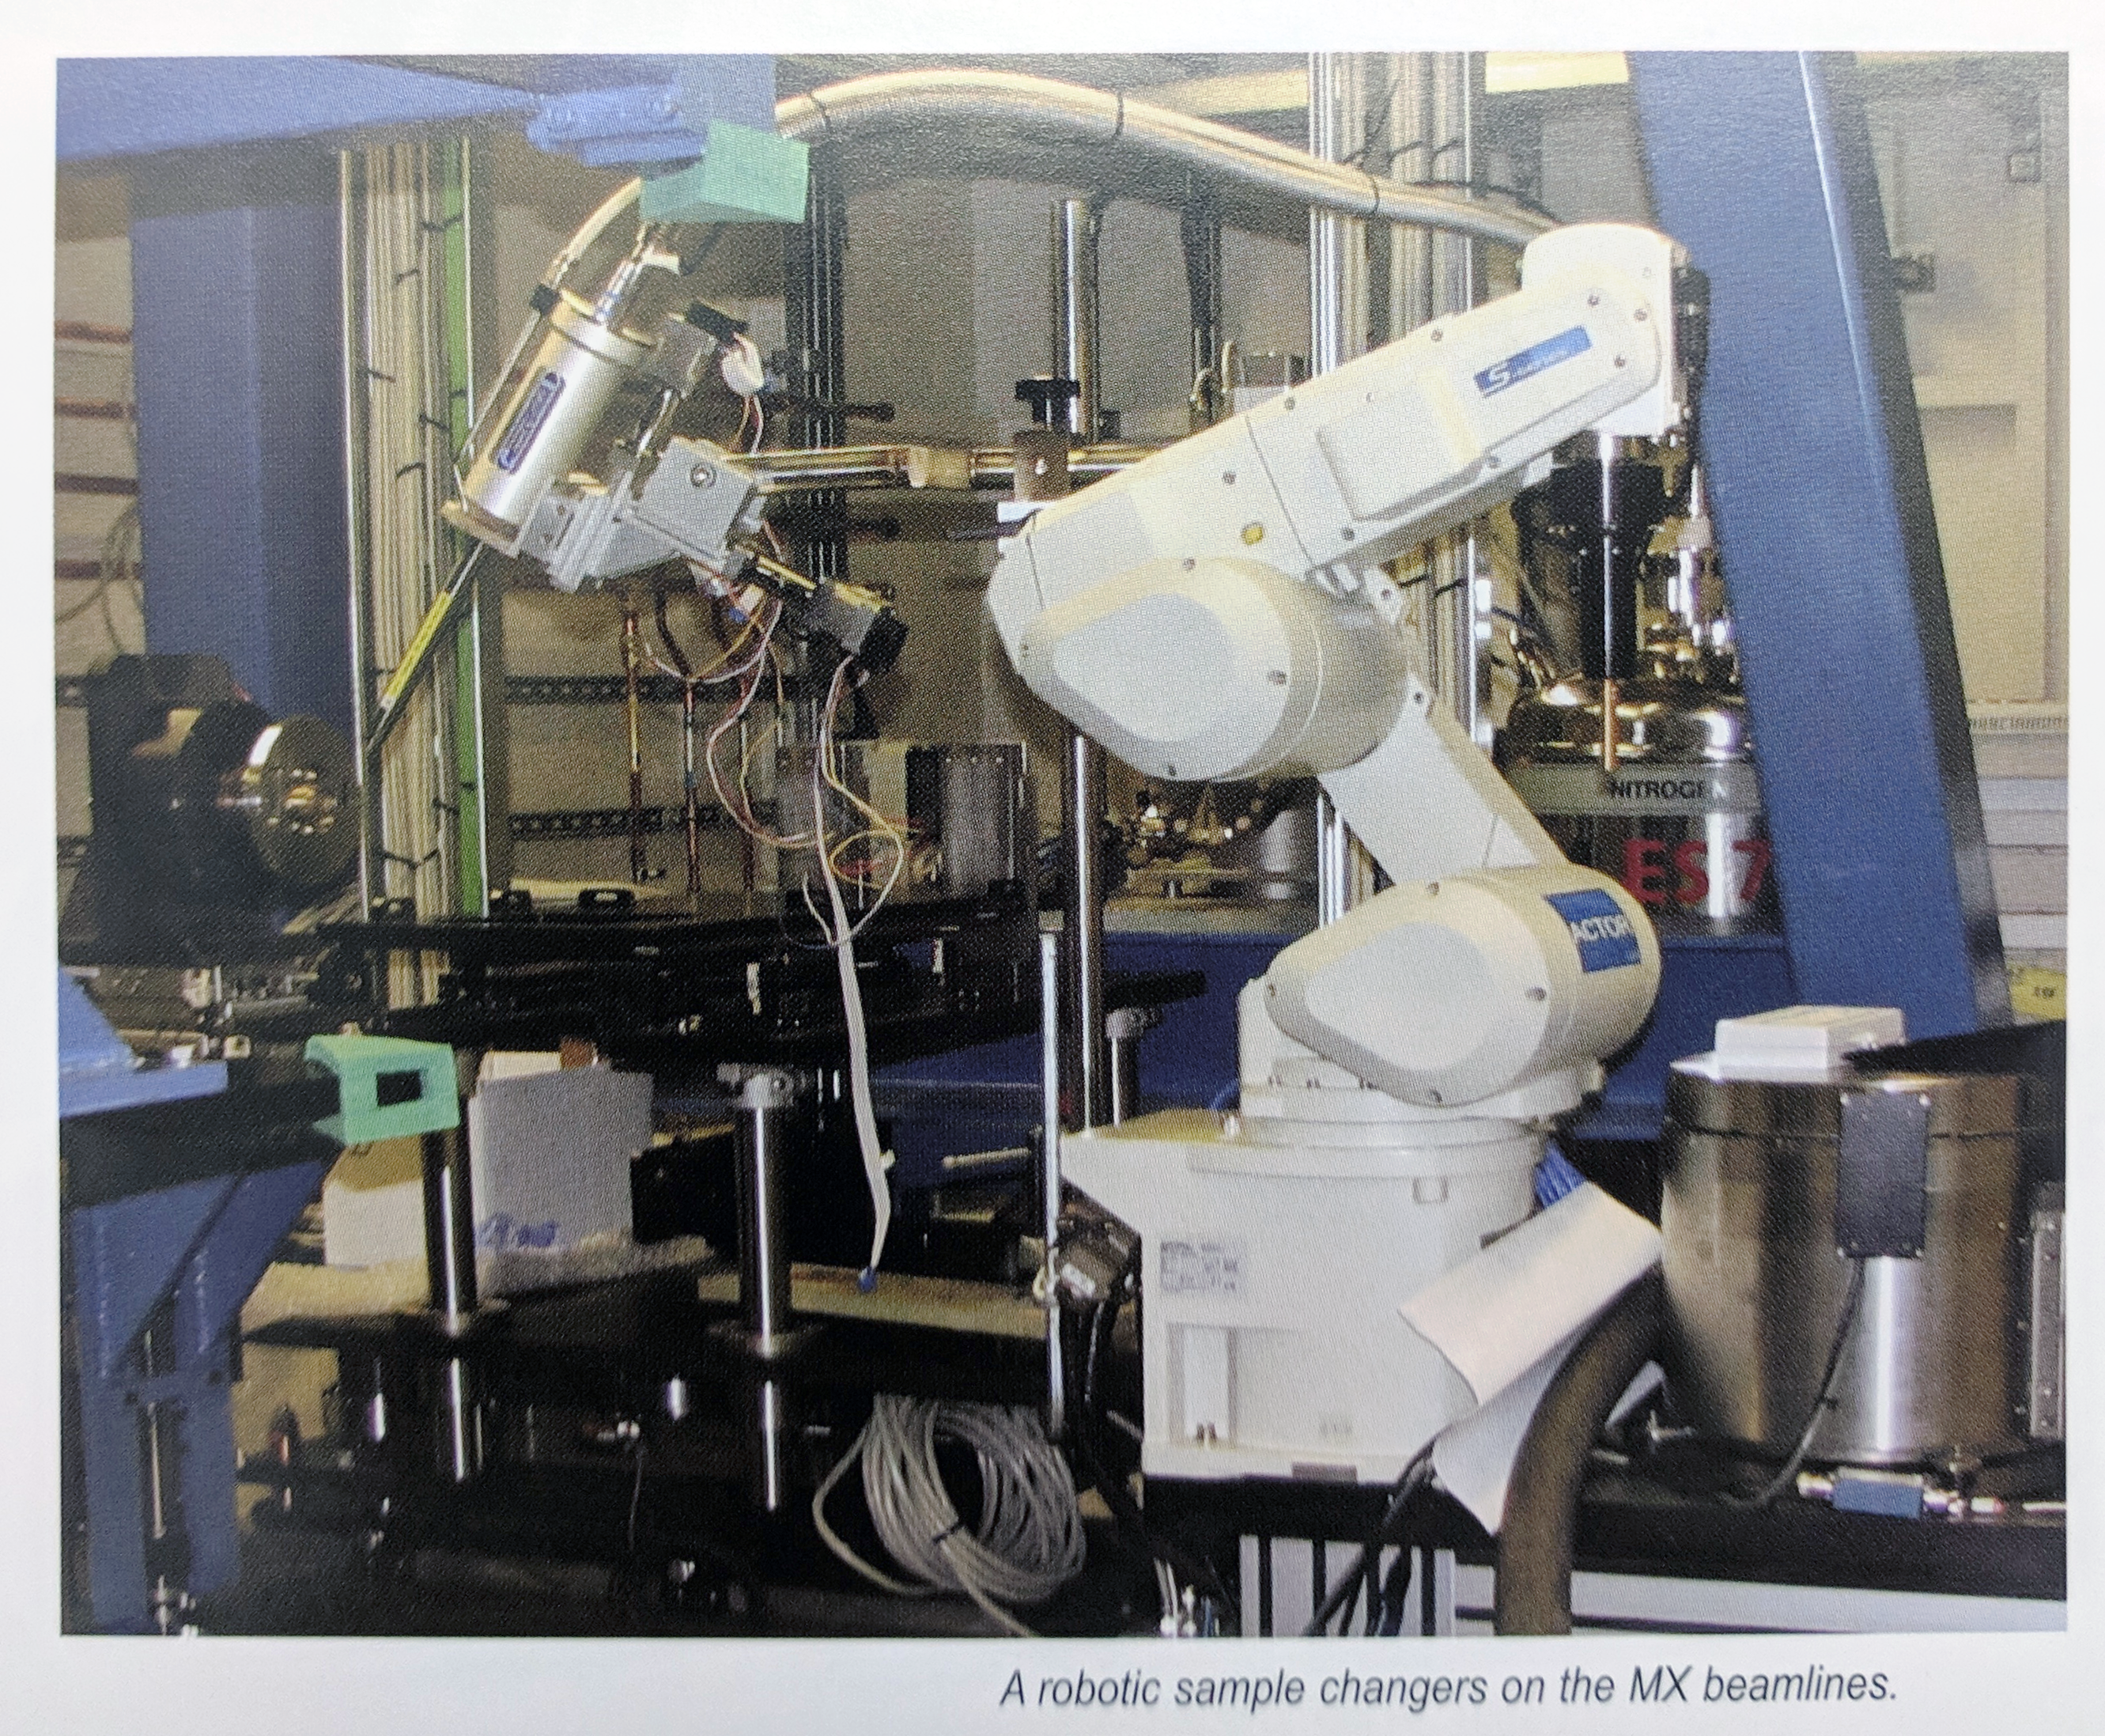 Robotic sample changers on the MX beamlines.